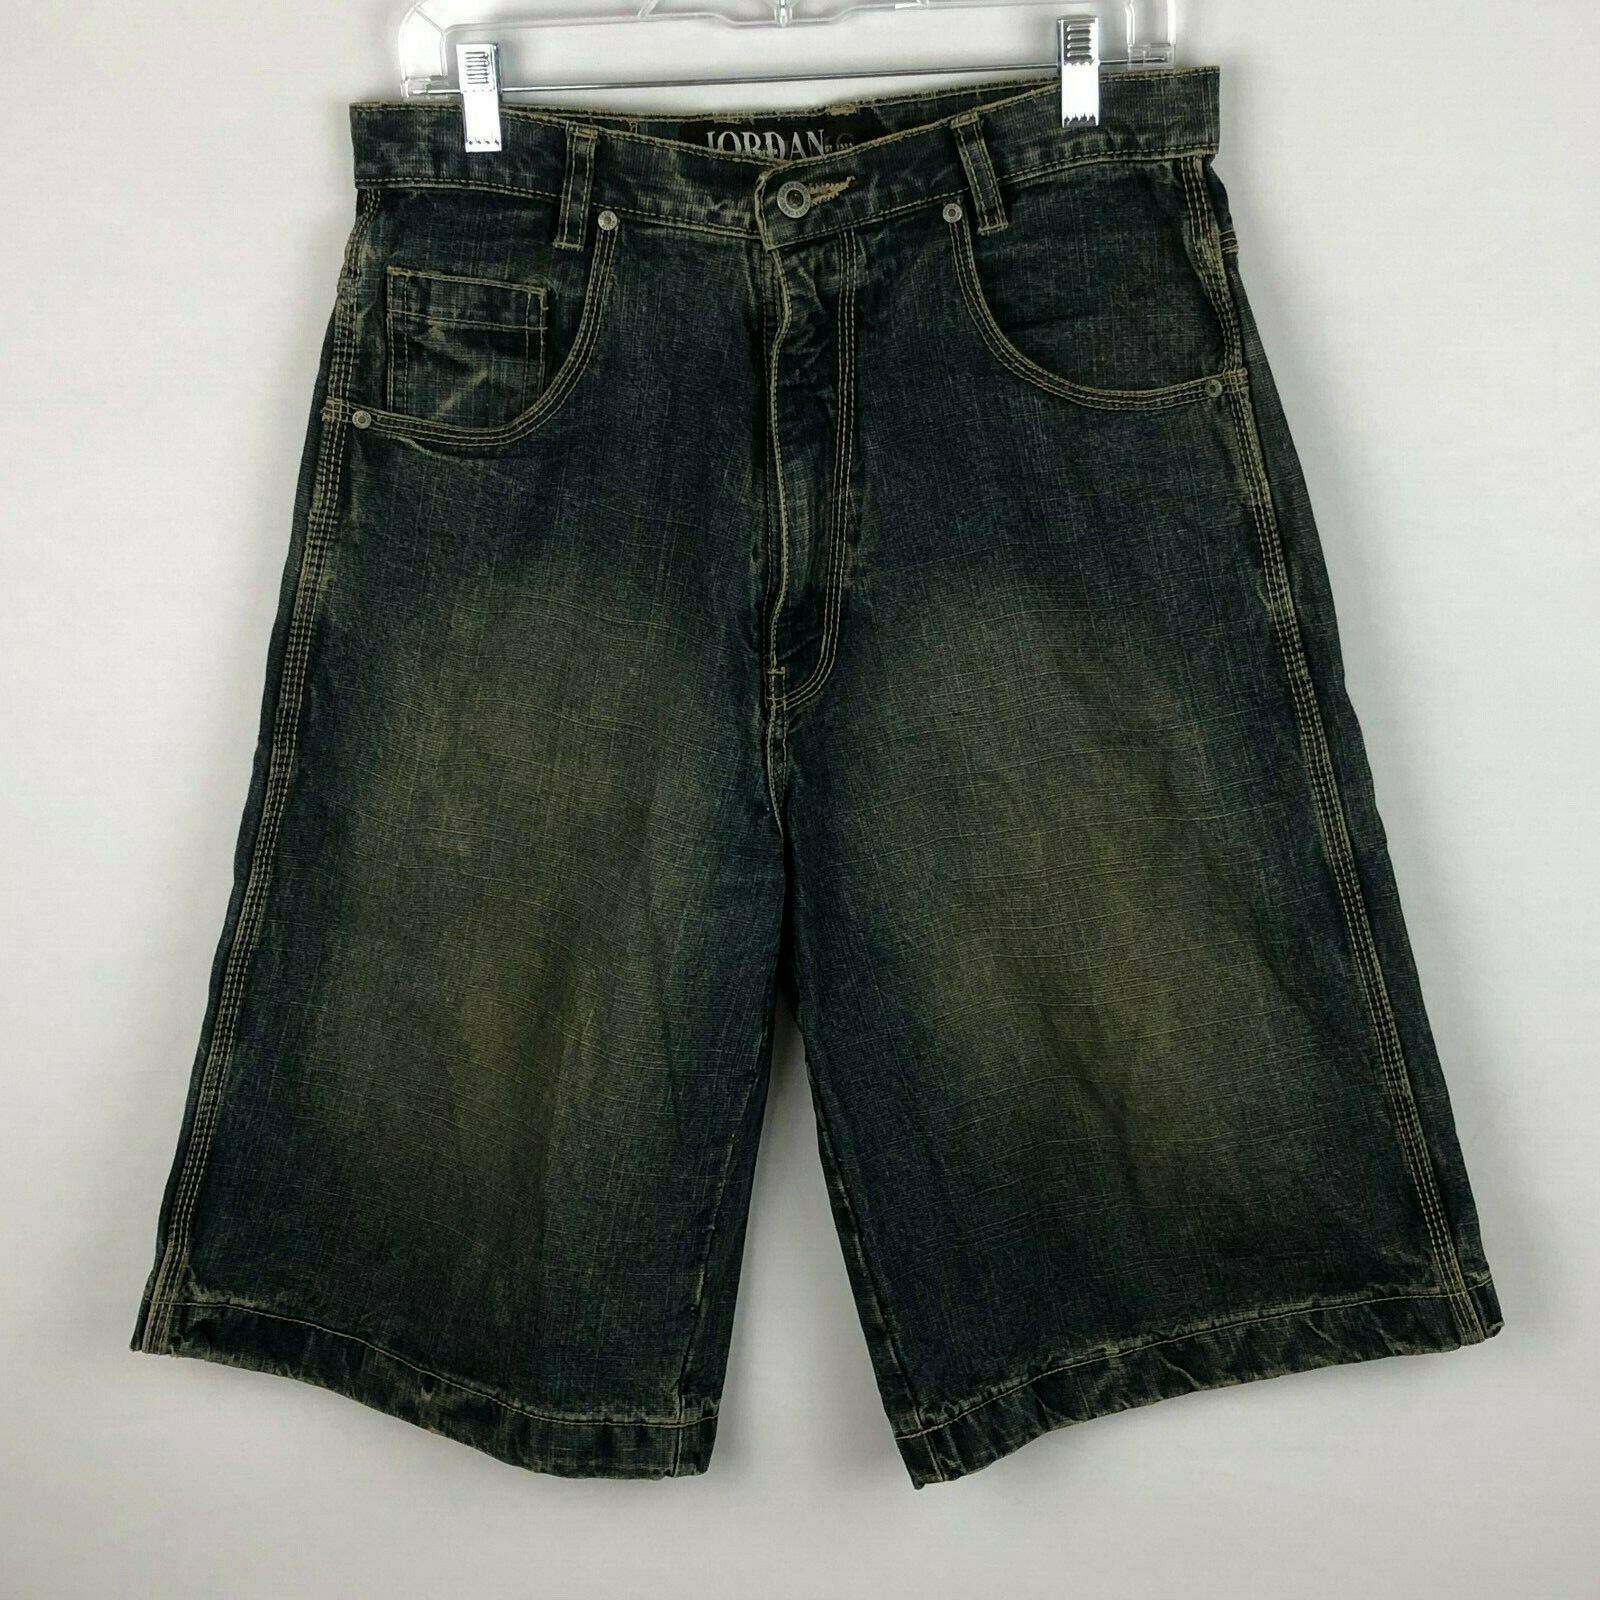 Jordan Craig Mens 32 Sandblasted Denim Shorts 31 X 12 3 4